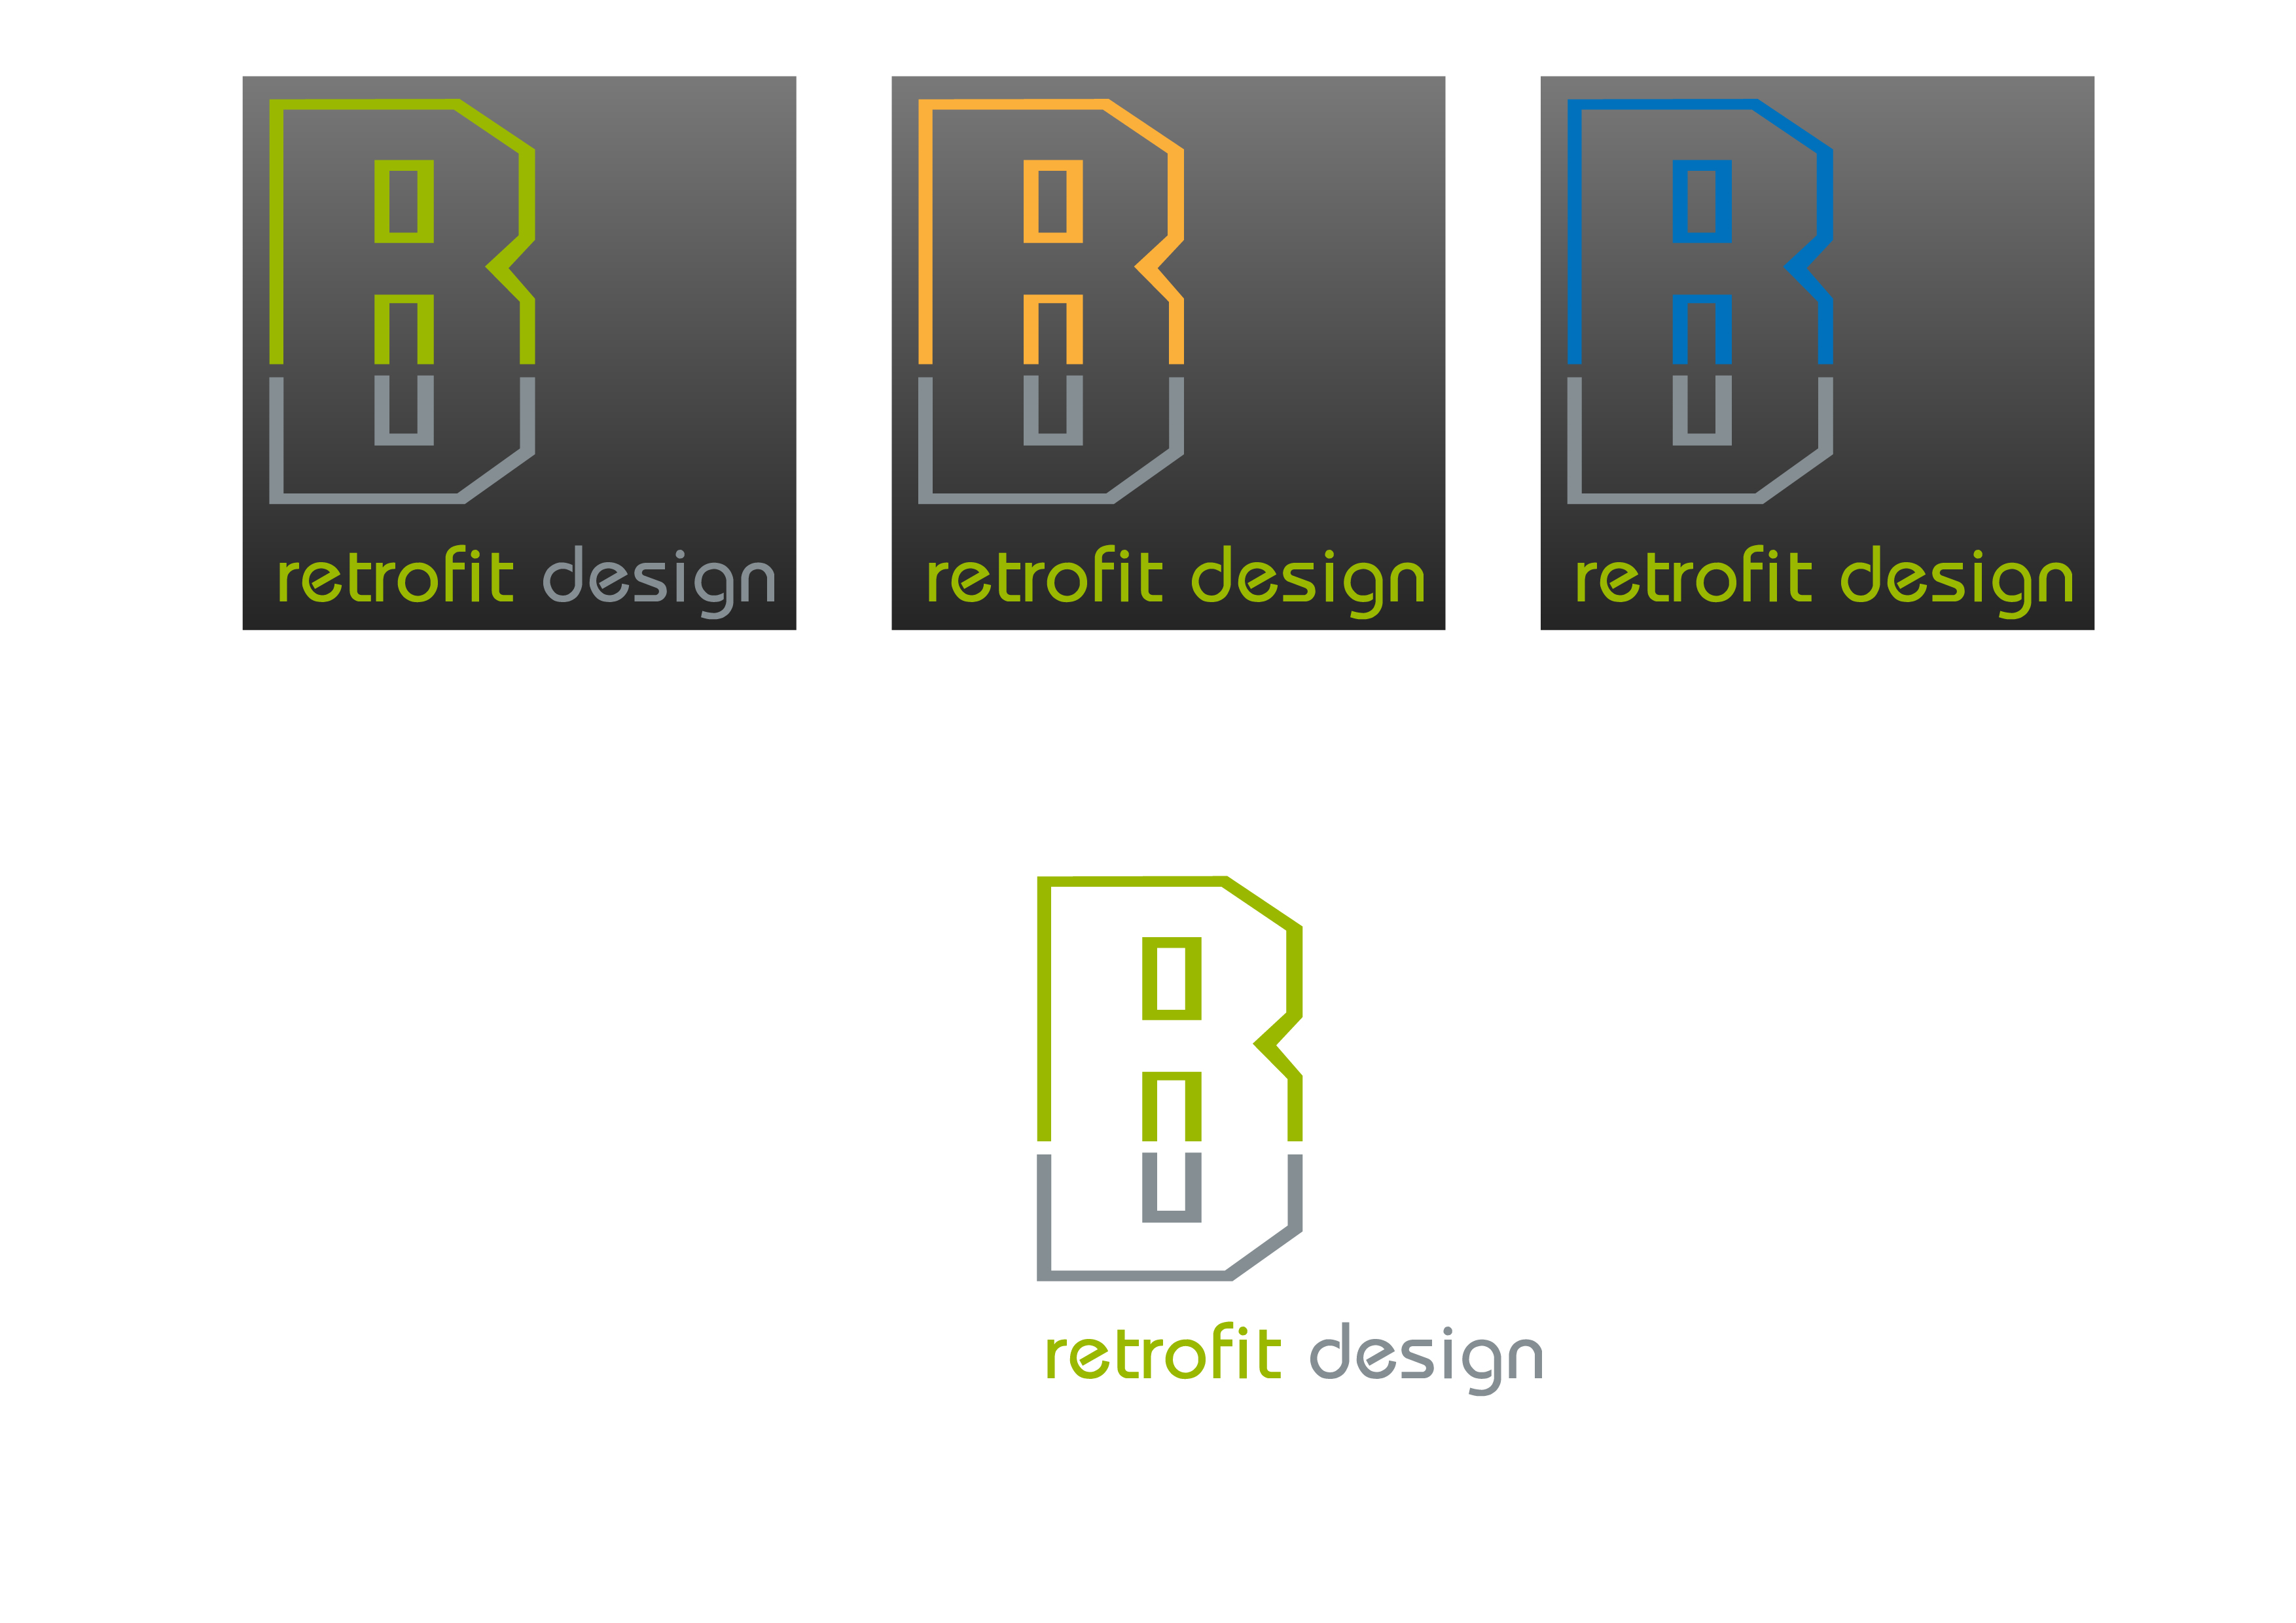 Logo Design by 3draw - Entry No. 178 in the Logo Design Contest Inspiring Logo Design for retrofit design.